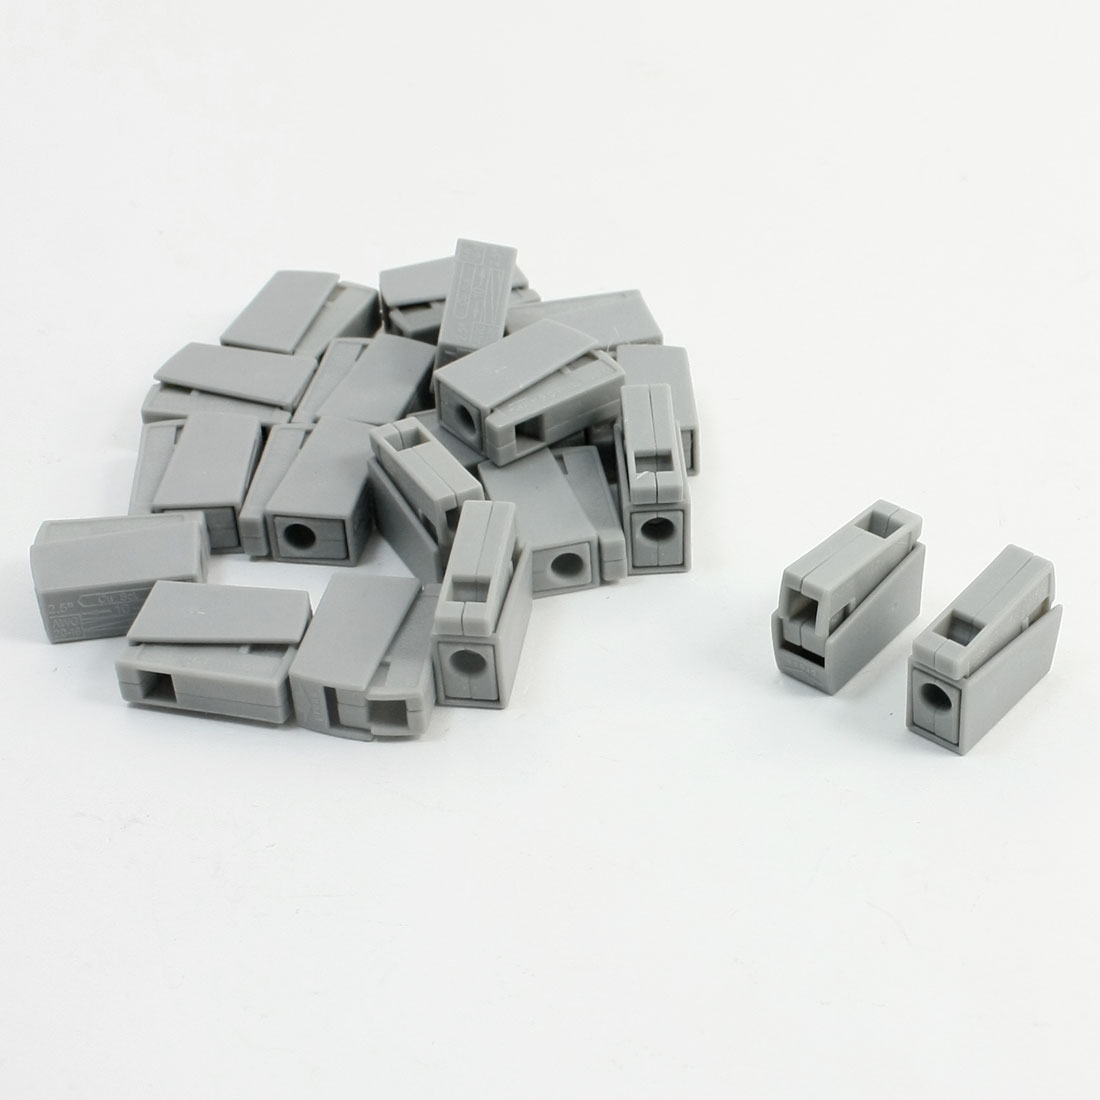 1-0-2-5mm2-0-5-2-5mm2-2-Wire-Quick-Connector-Block-AC-250V-24A-20-Pcs